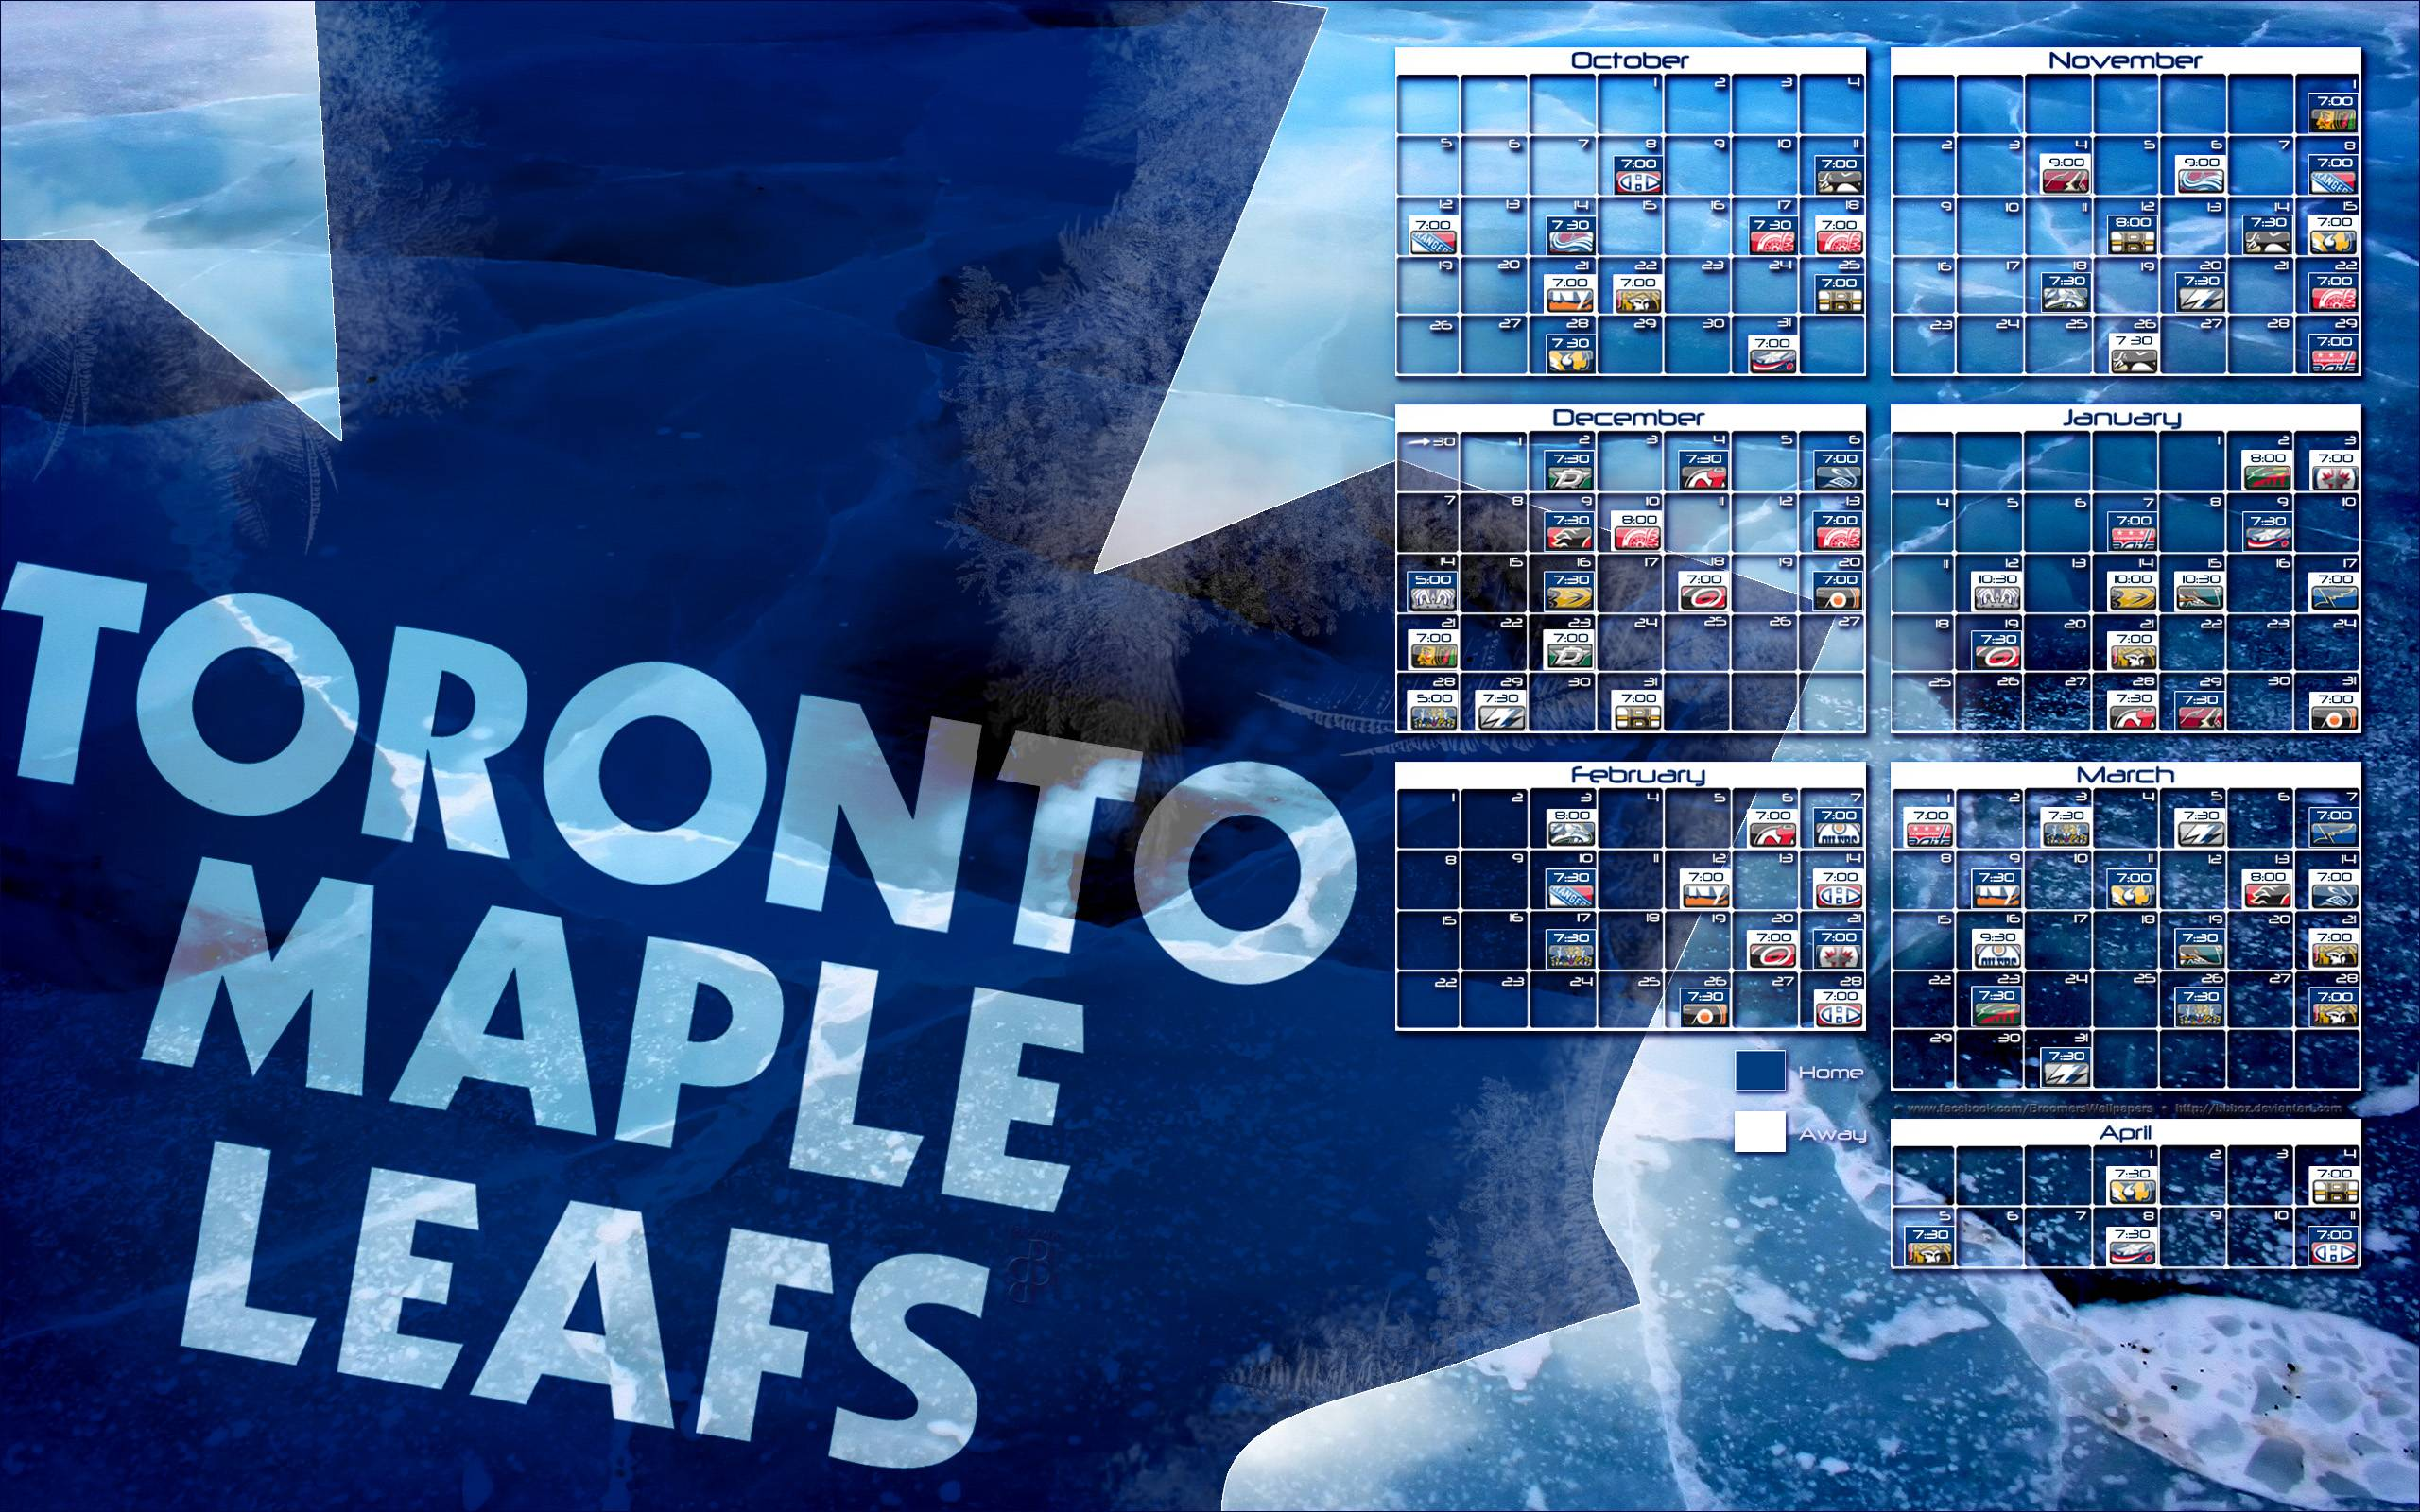 Toronto Maple Leafs Wallpapers - Wallpaper Cave